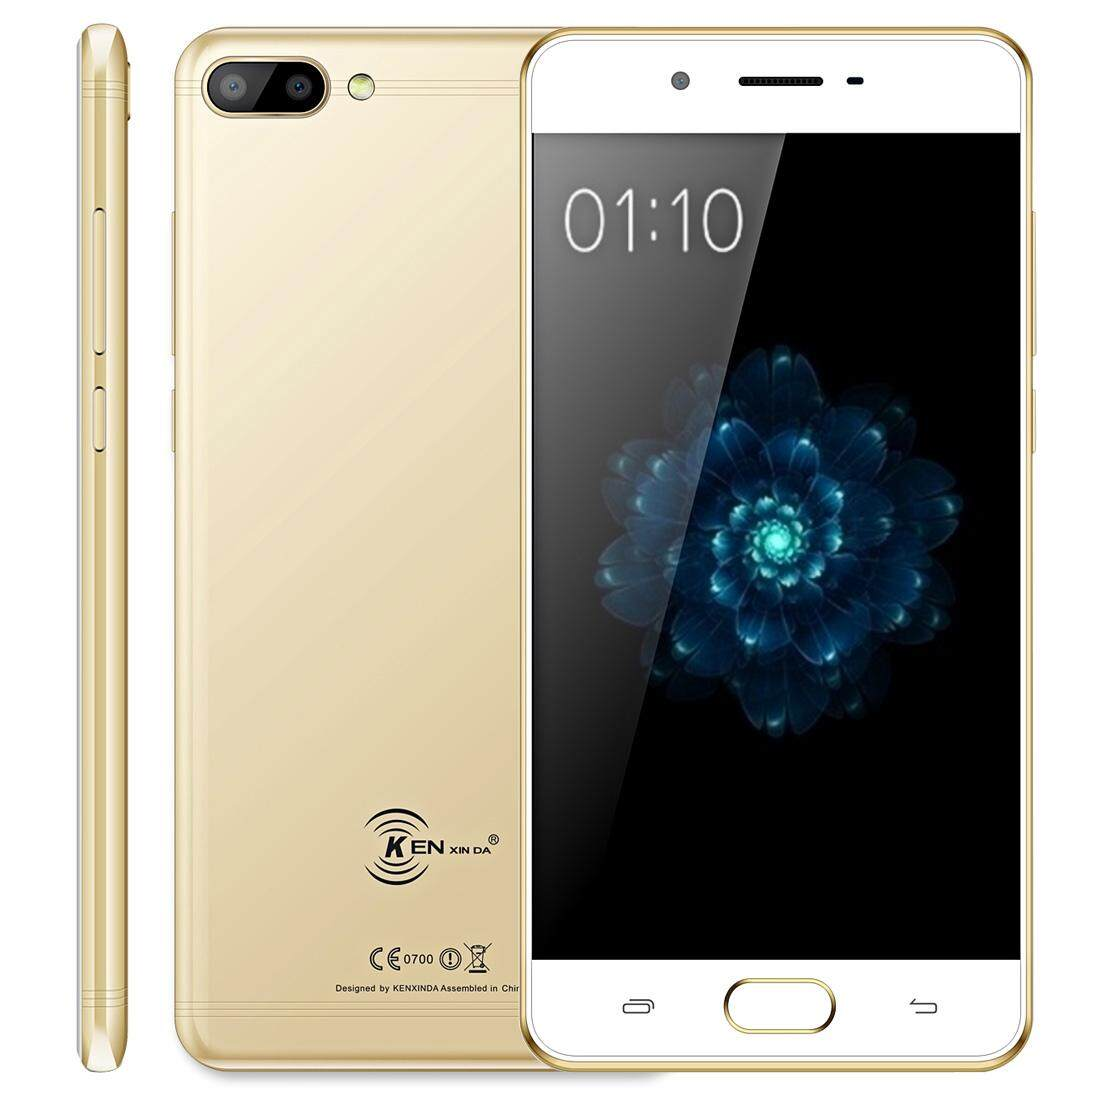 KEN XIN DA X6 3GB+32GB Dual Cameras Fingerprint Identification 5.0 inch Android 7.0 MTK6737 Quad Core 1.5GHz Network